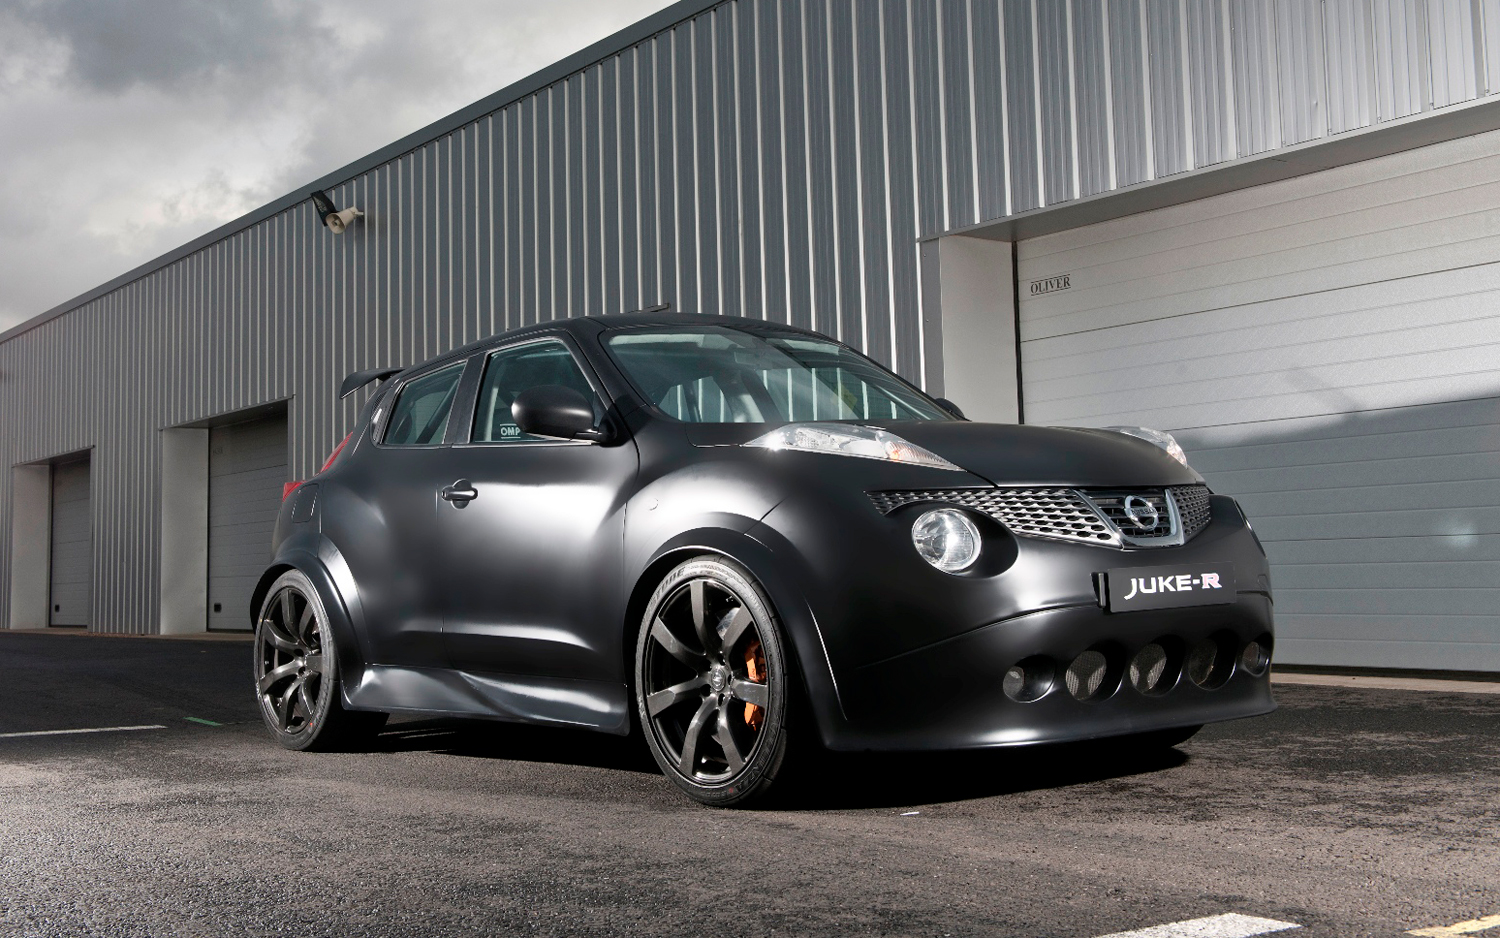 Juke R Specs Revealed Nissan Claims World S Fastest Crossover 0 62